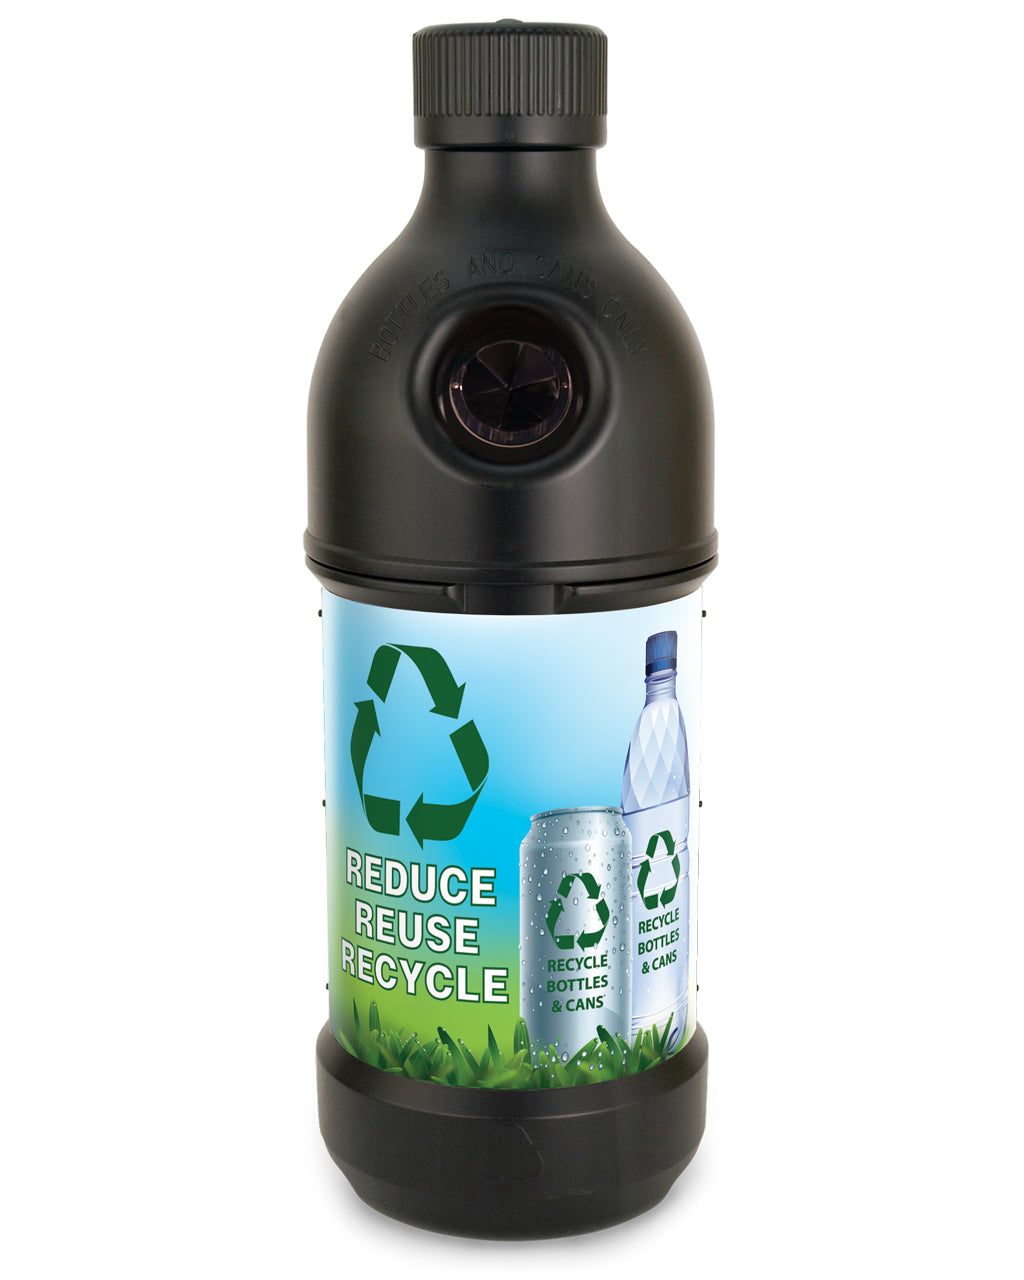 PET Recycling Bottle (100% Post Consumer Waste)